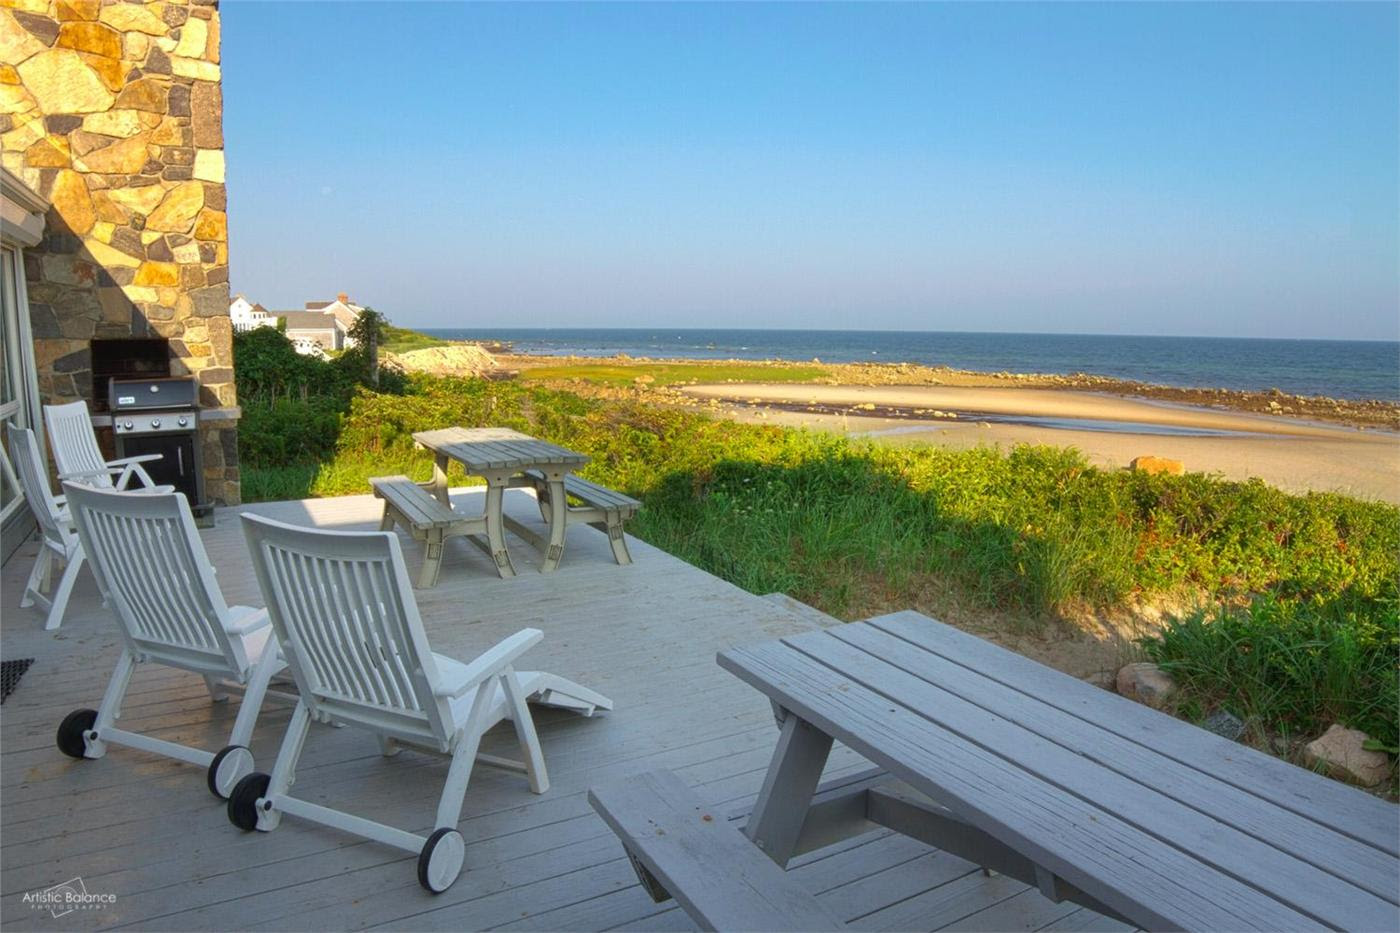 Dennis Vacation Rental home in Cape Cod MA 02641 Private